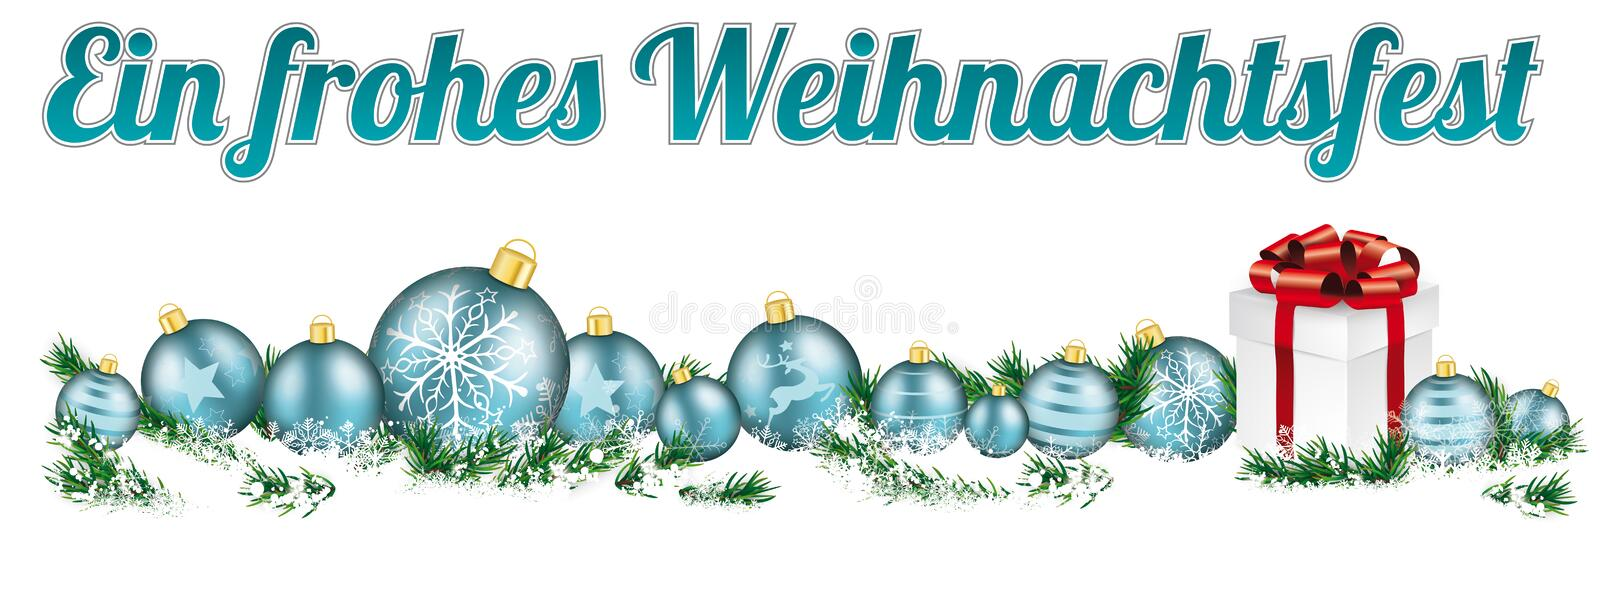 Christmas Cyan Baubles Headline Snow Gift Frohes Weihnachtsfest. German text Frohes Weihnachtsfest, translate Merry Christmas royalty free illustration